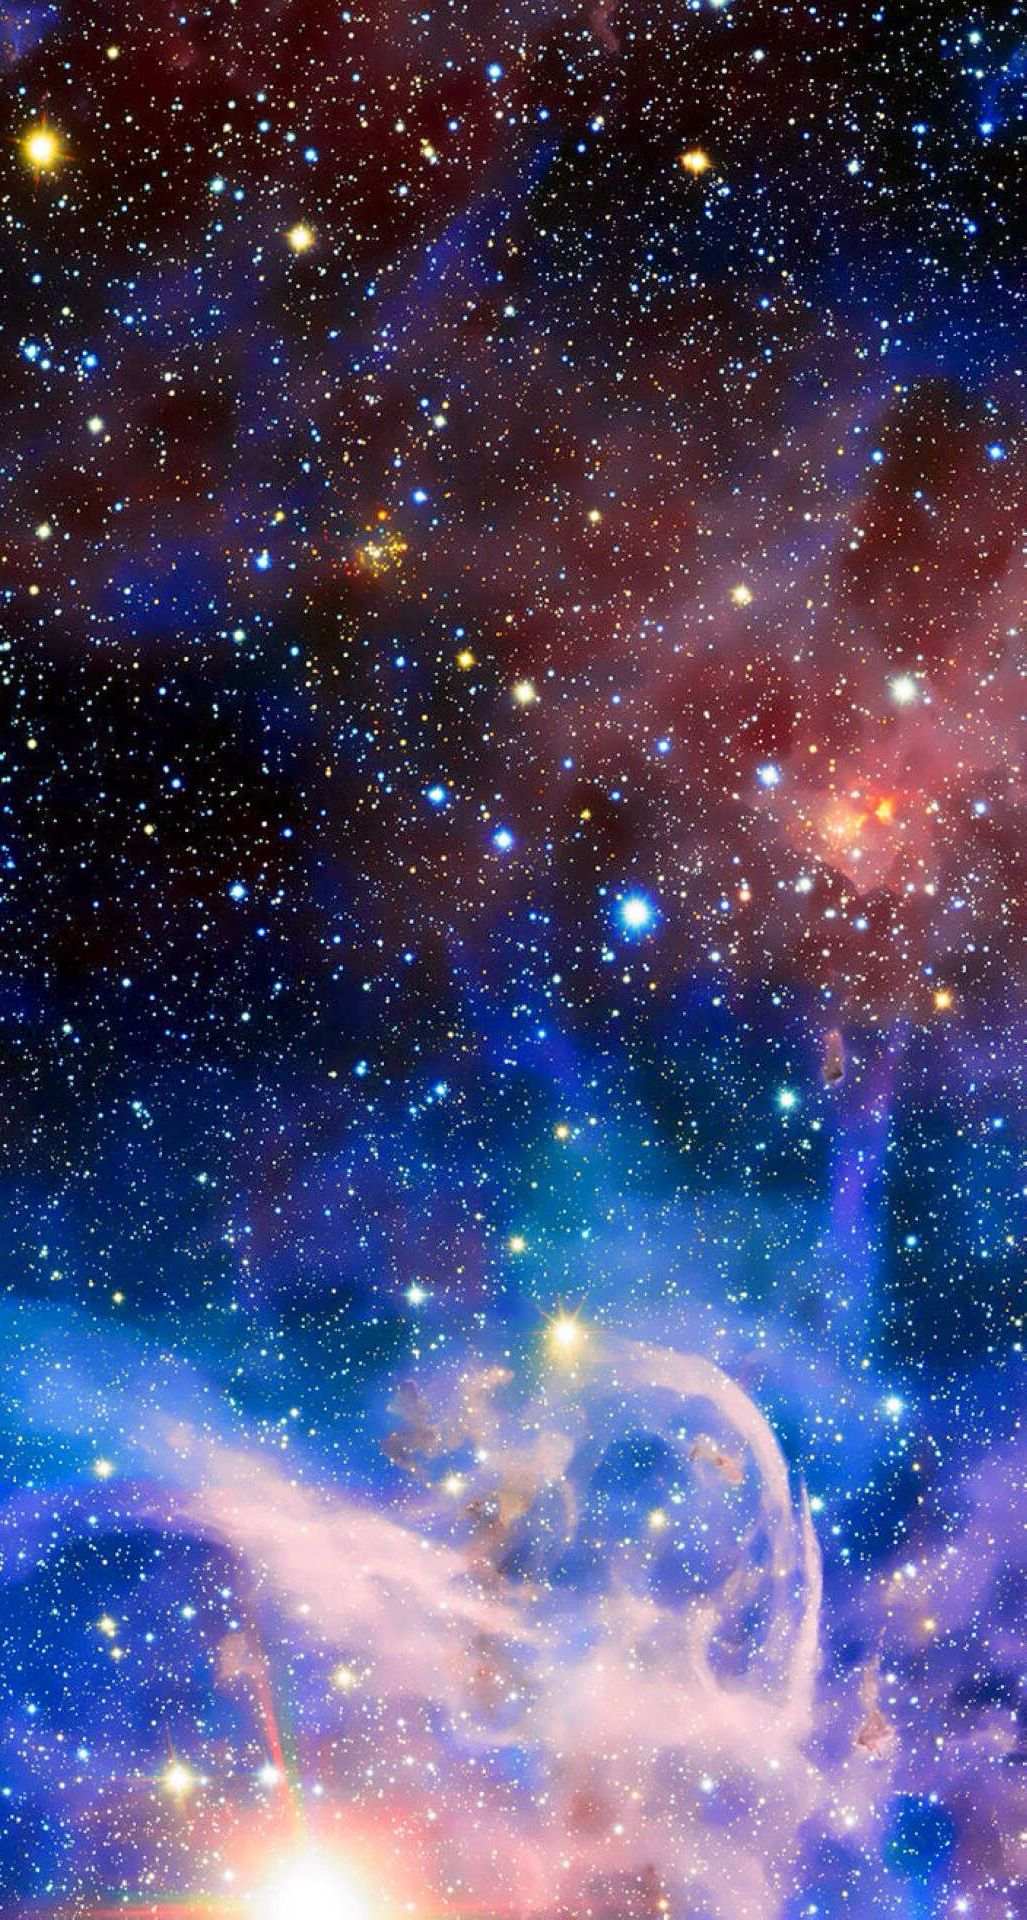 Universe. Tap image for more iPhone galaxy stars wallpaper! - @mobile9 | Beautiful wallpapers ...